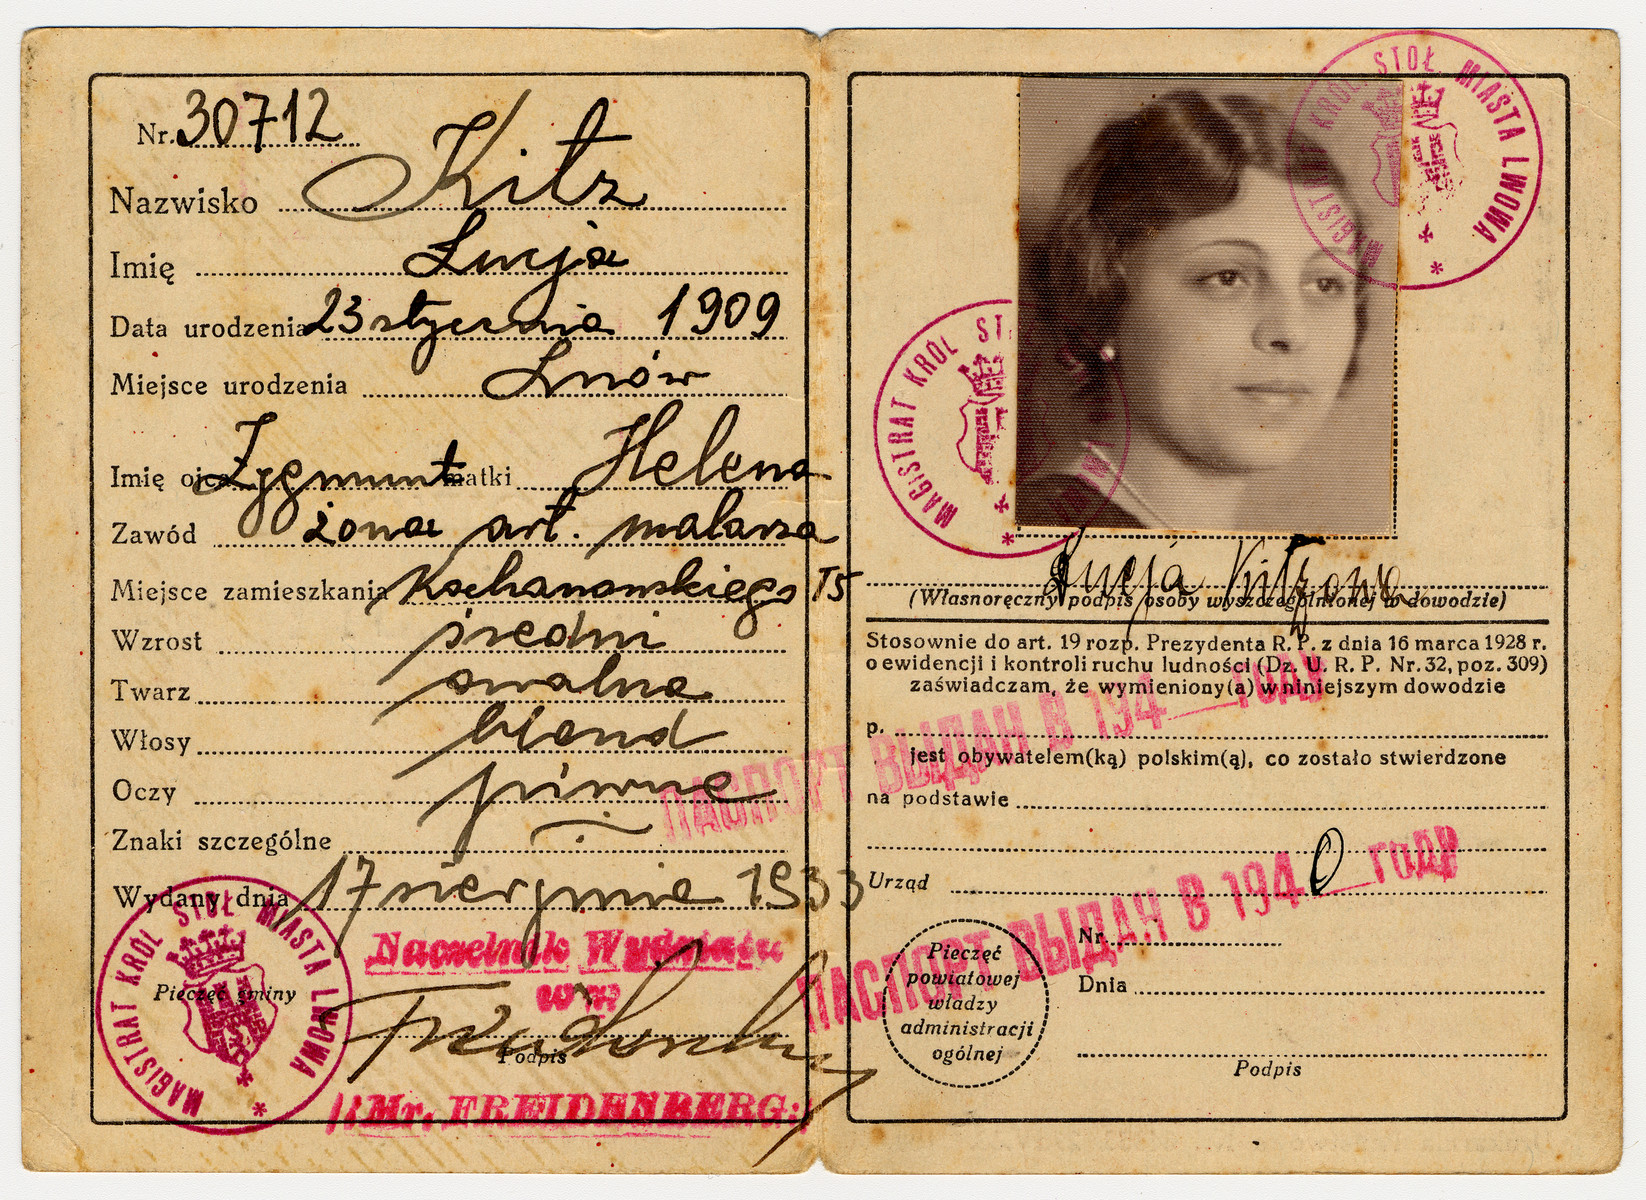 Identification issued to Lucie Kritz in 1933 and restamped by the Soviet government in 1940.